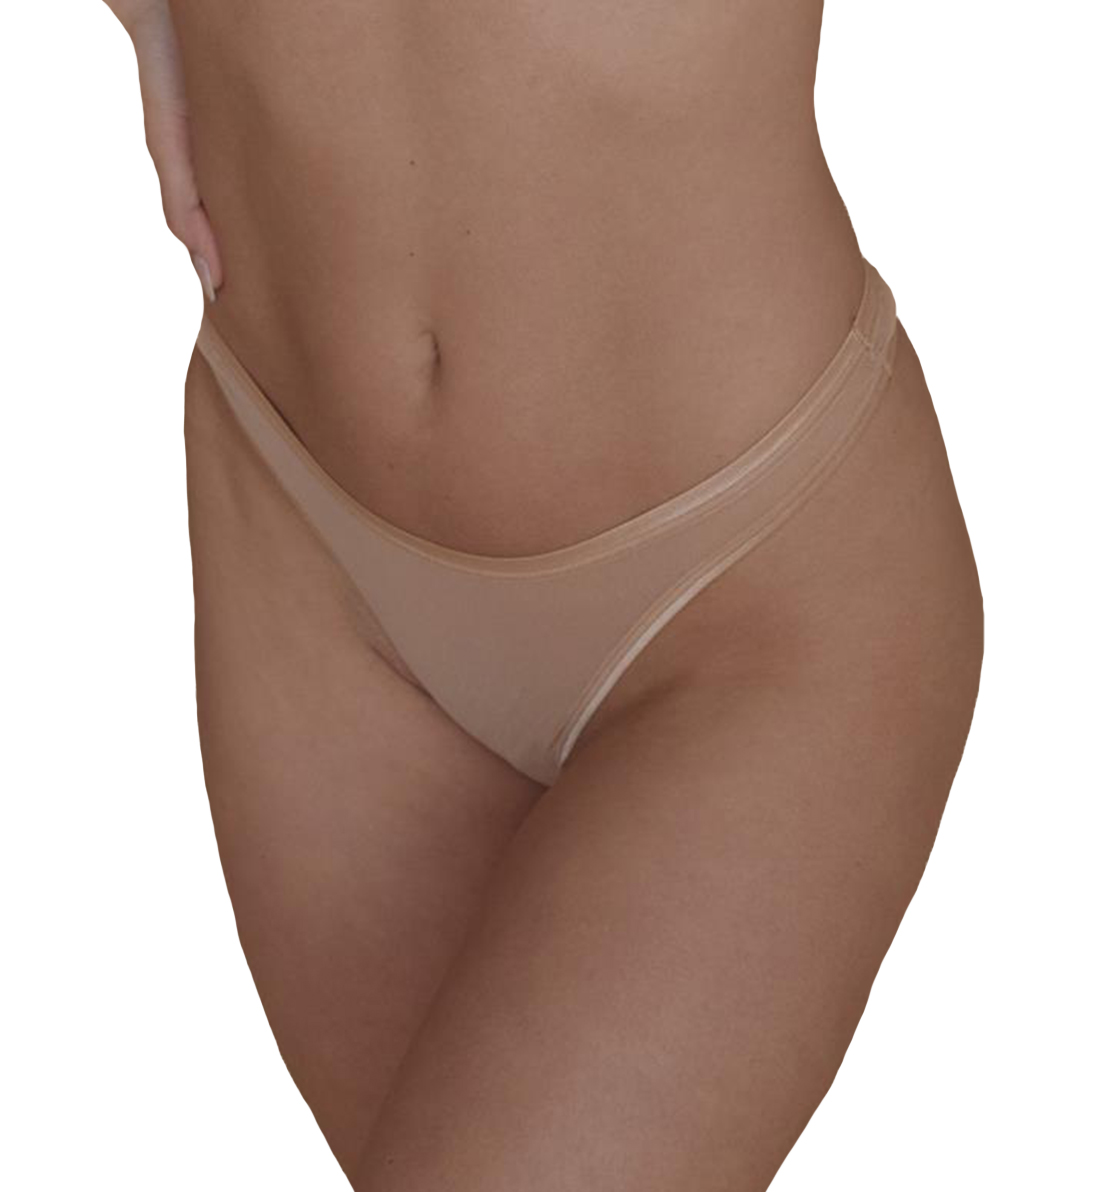 L//XL S//M SALE M//L Cosabella Soire Confidence Printed Classic Snake Thong